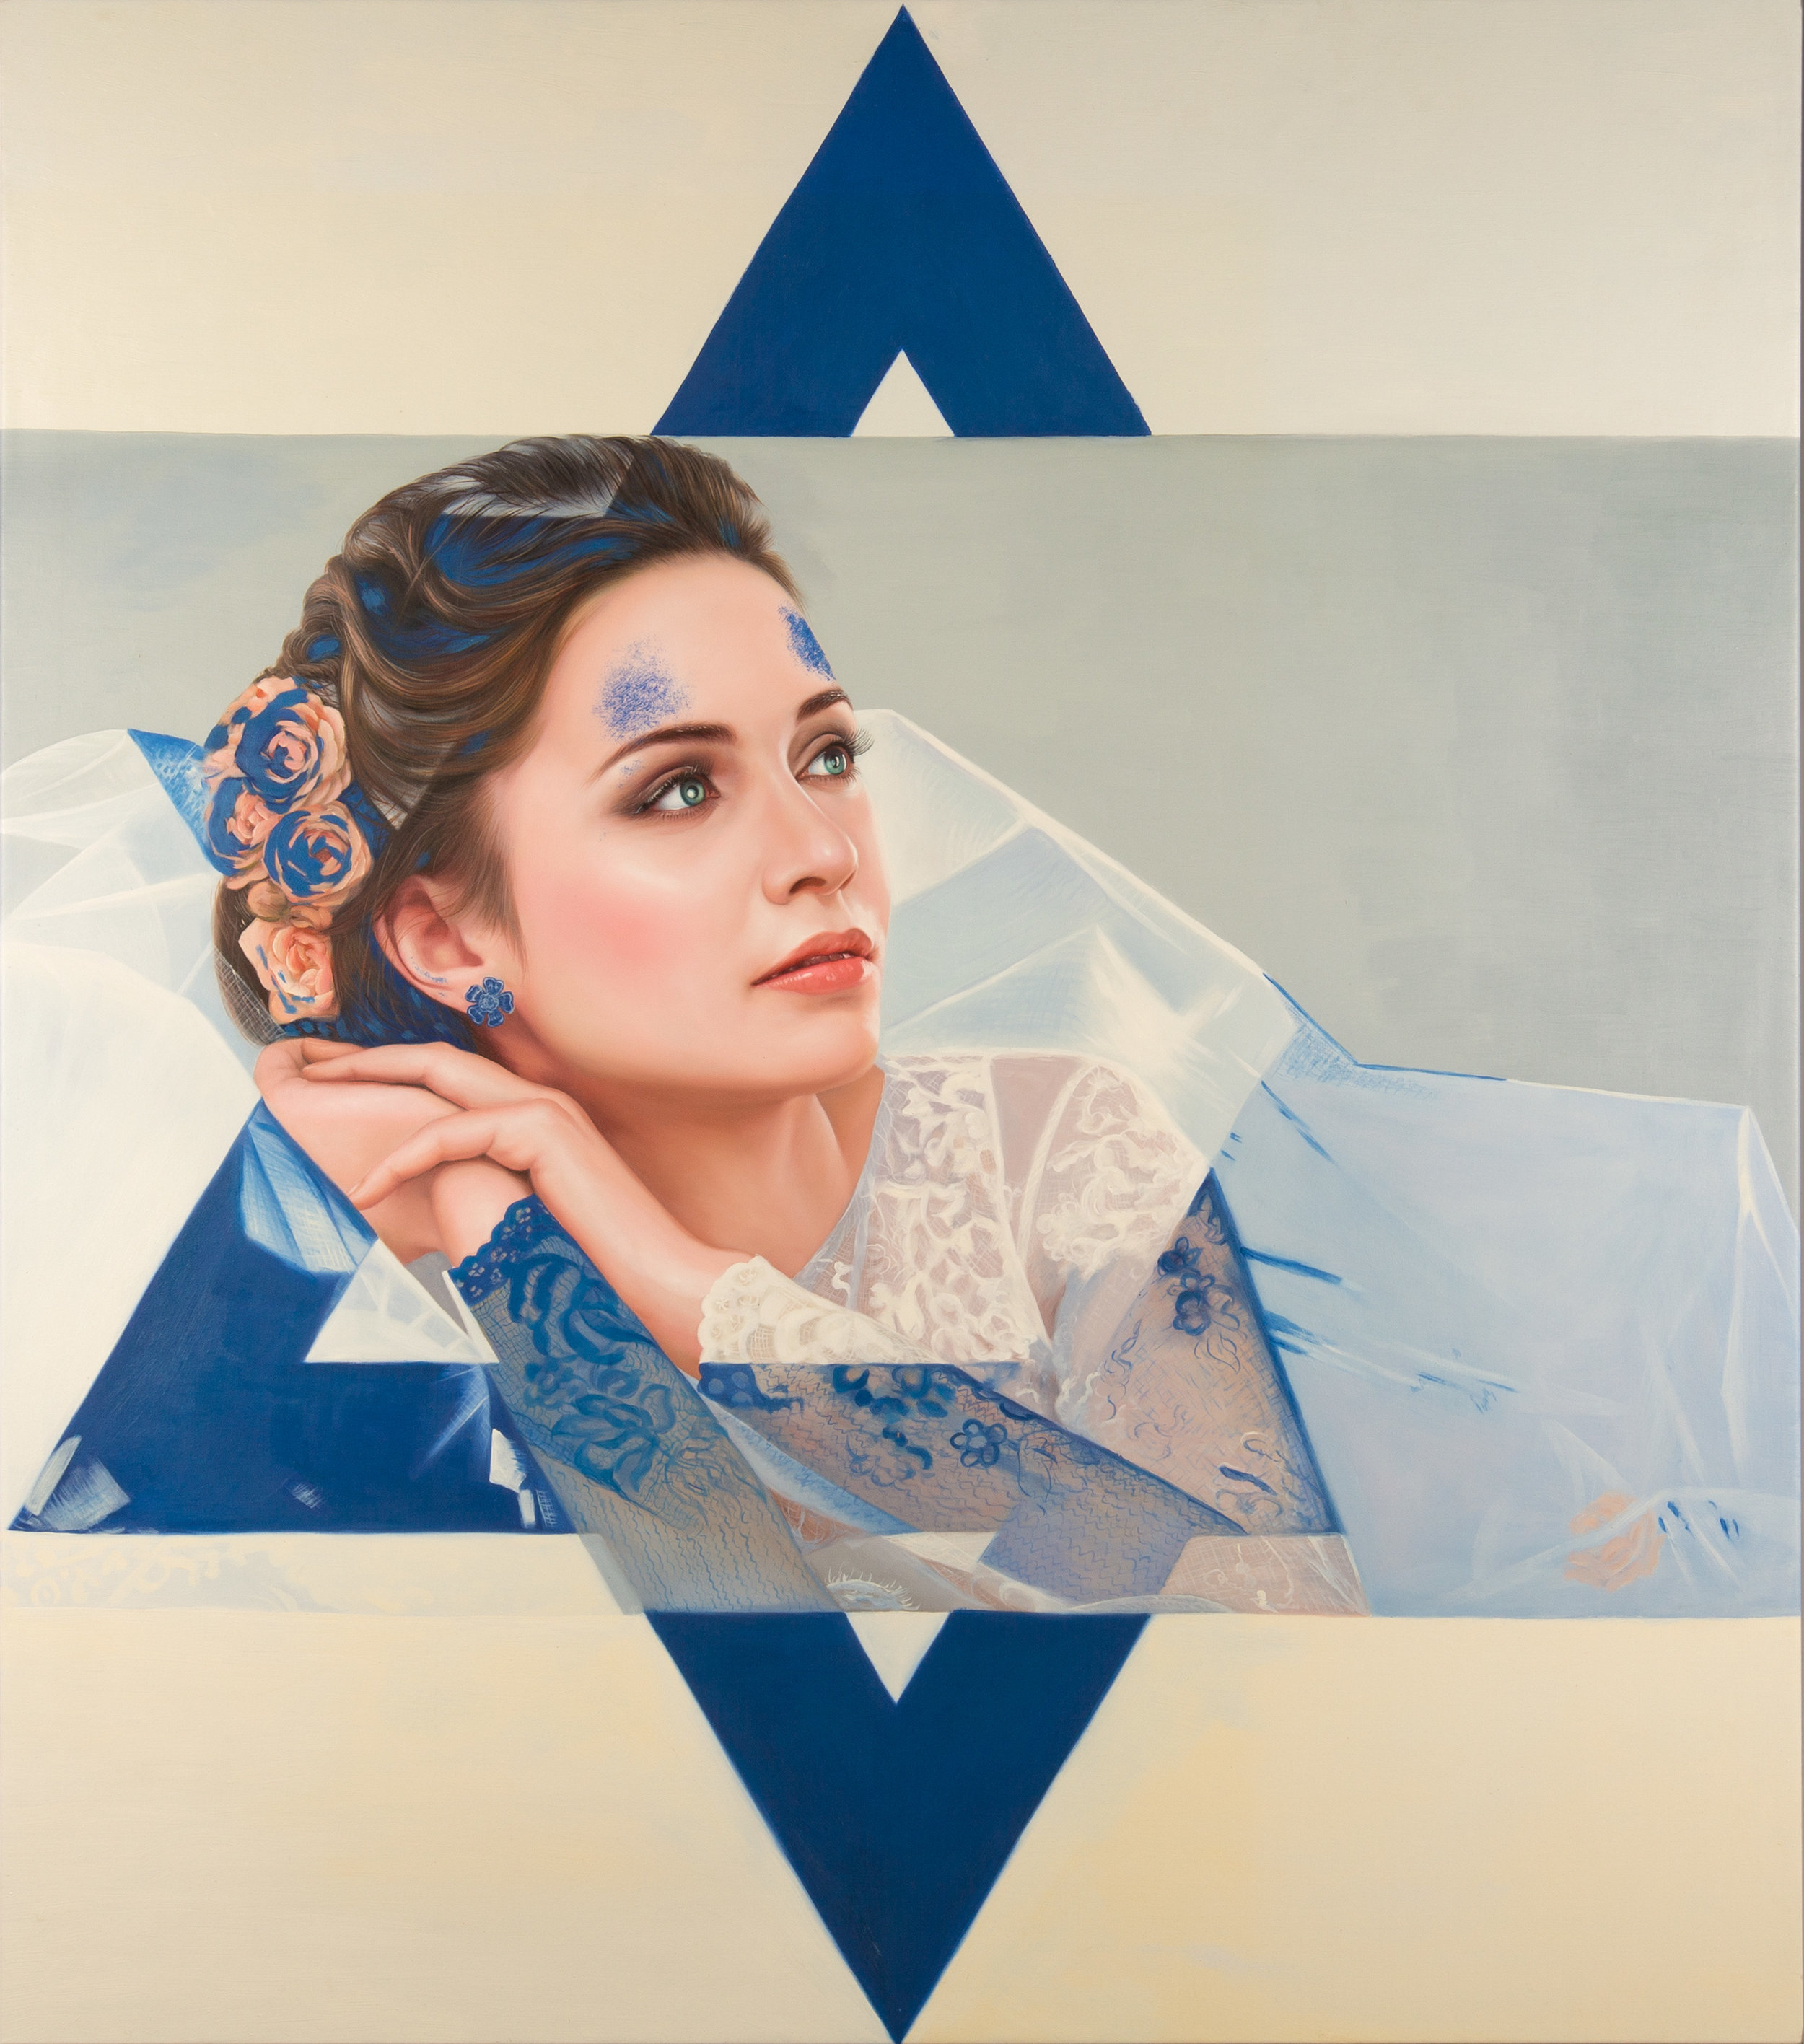 Alexander Tarrant   The Jewish Bride   Oil on Canvas